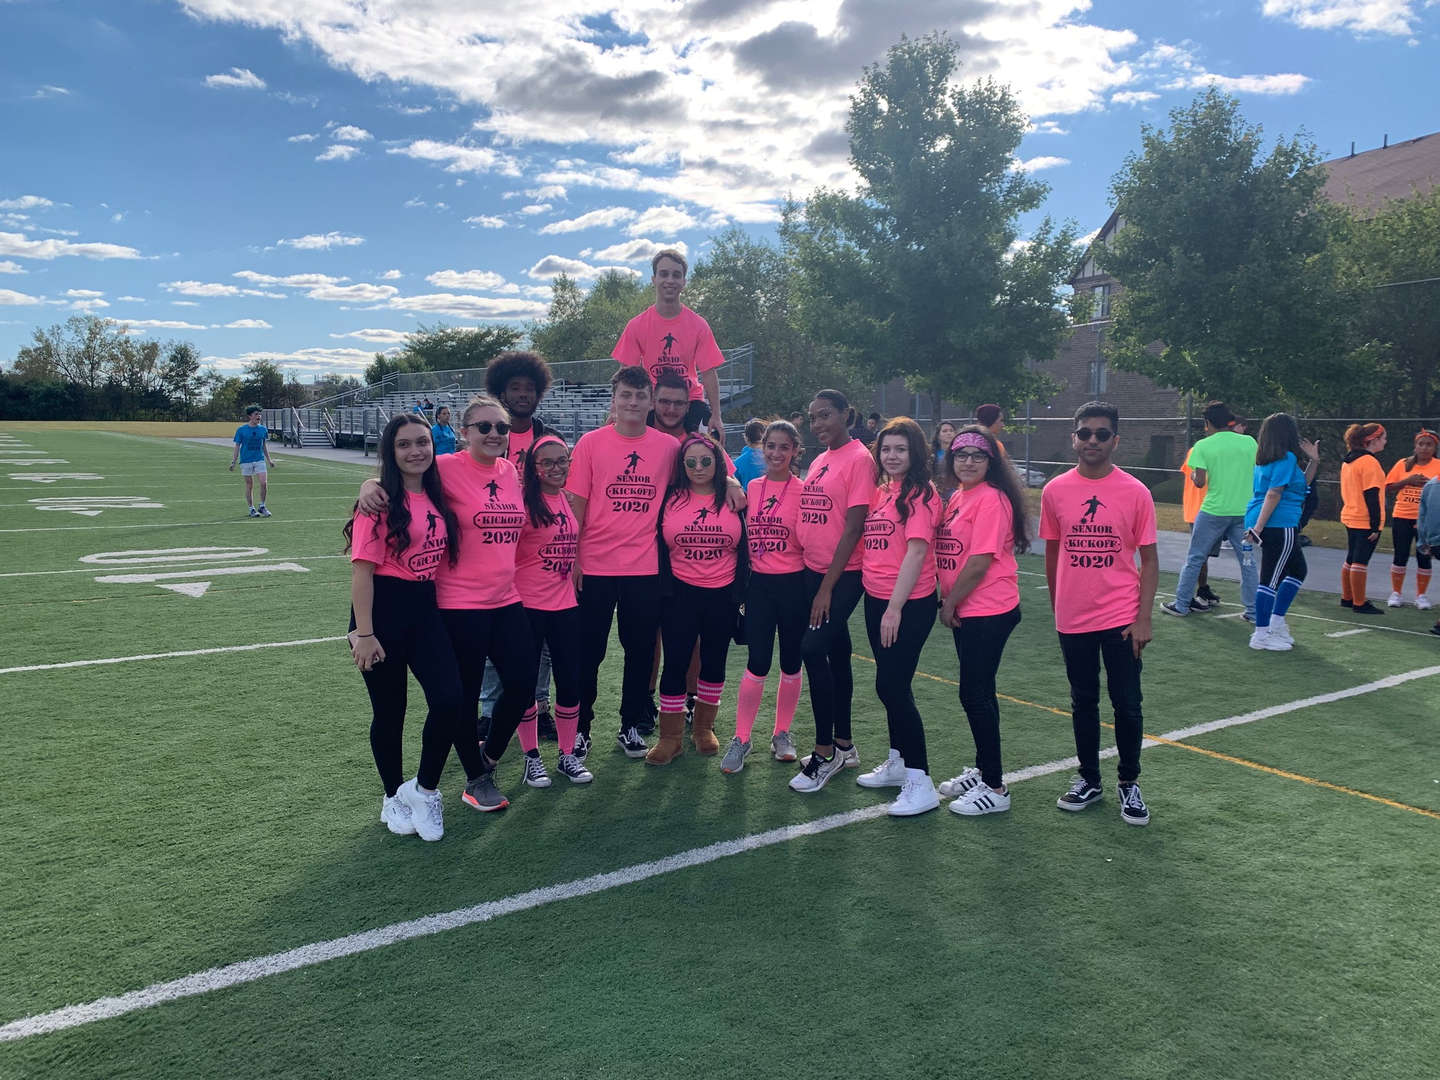 Group of students pose on football field during Senior Kickoff